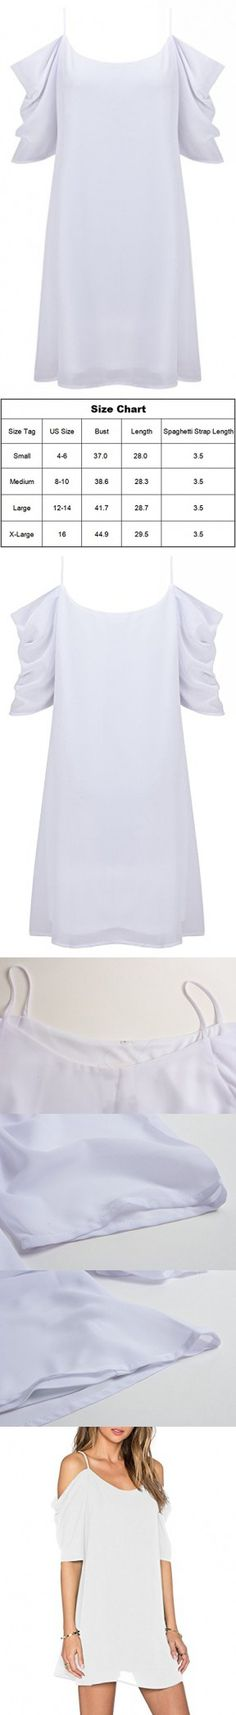 Women's Summer Spaghetti Strap Sundress Trumpet Sleeve Beach Slip Dress White X-Large